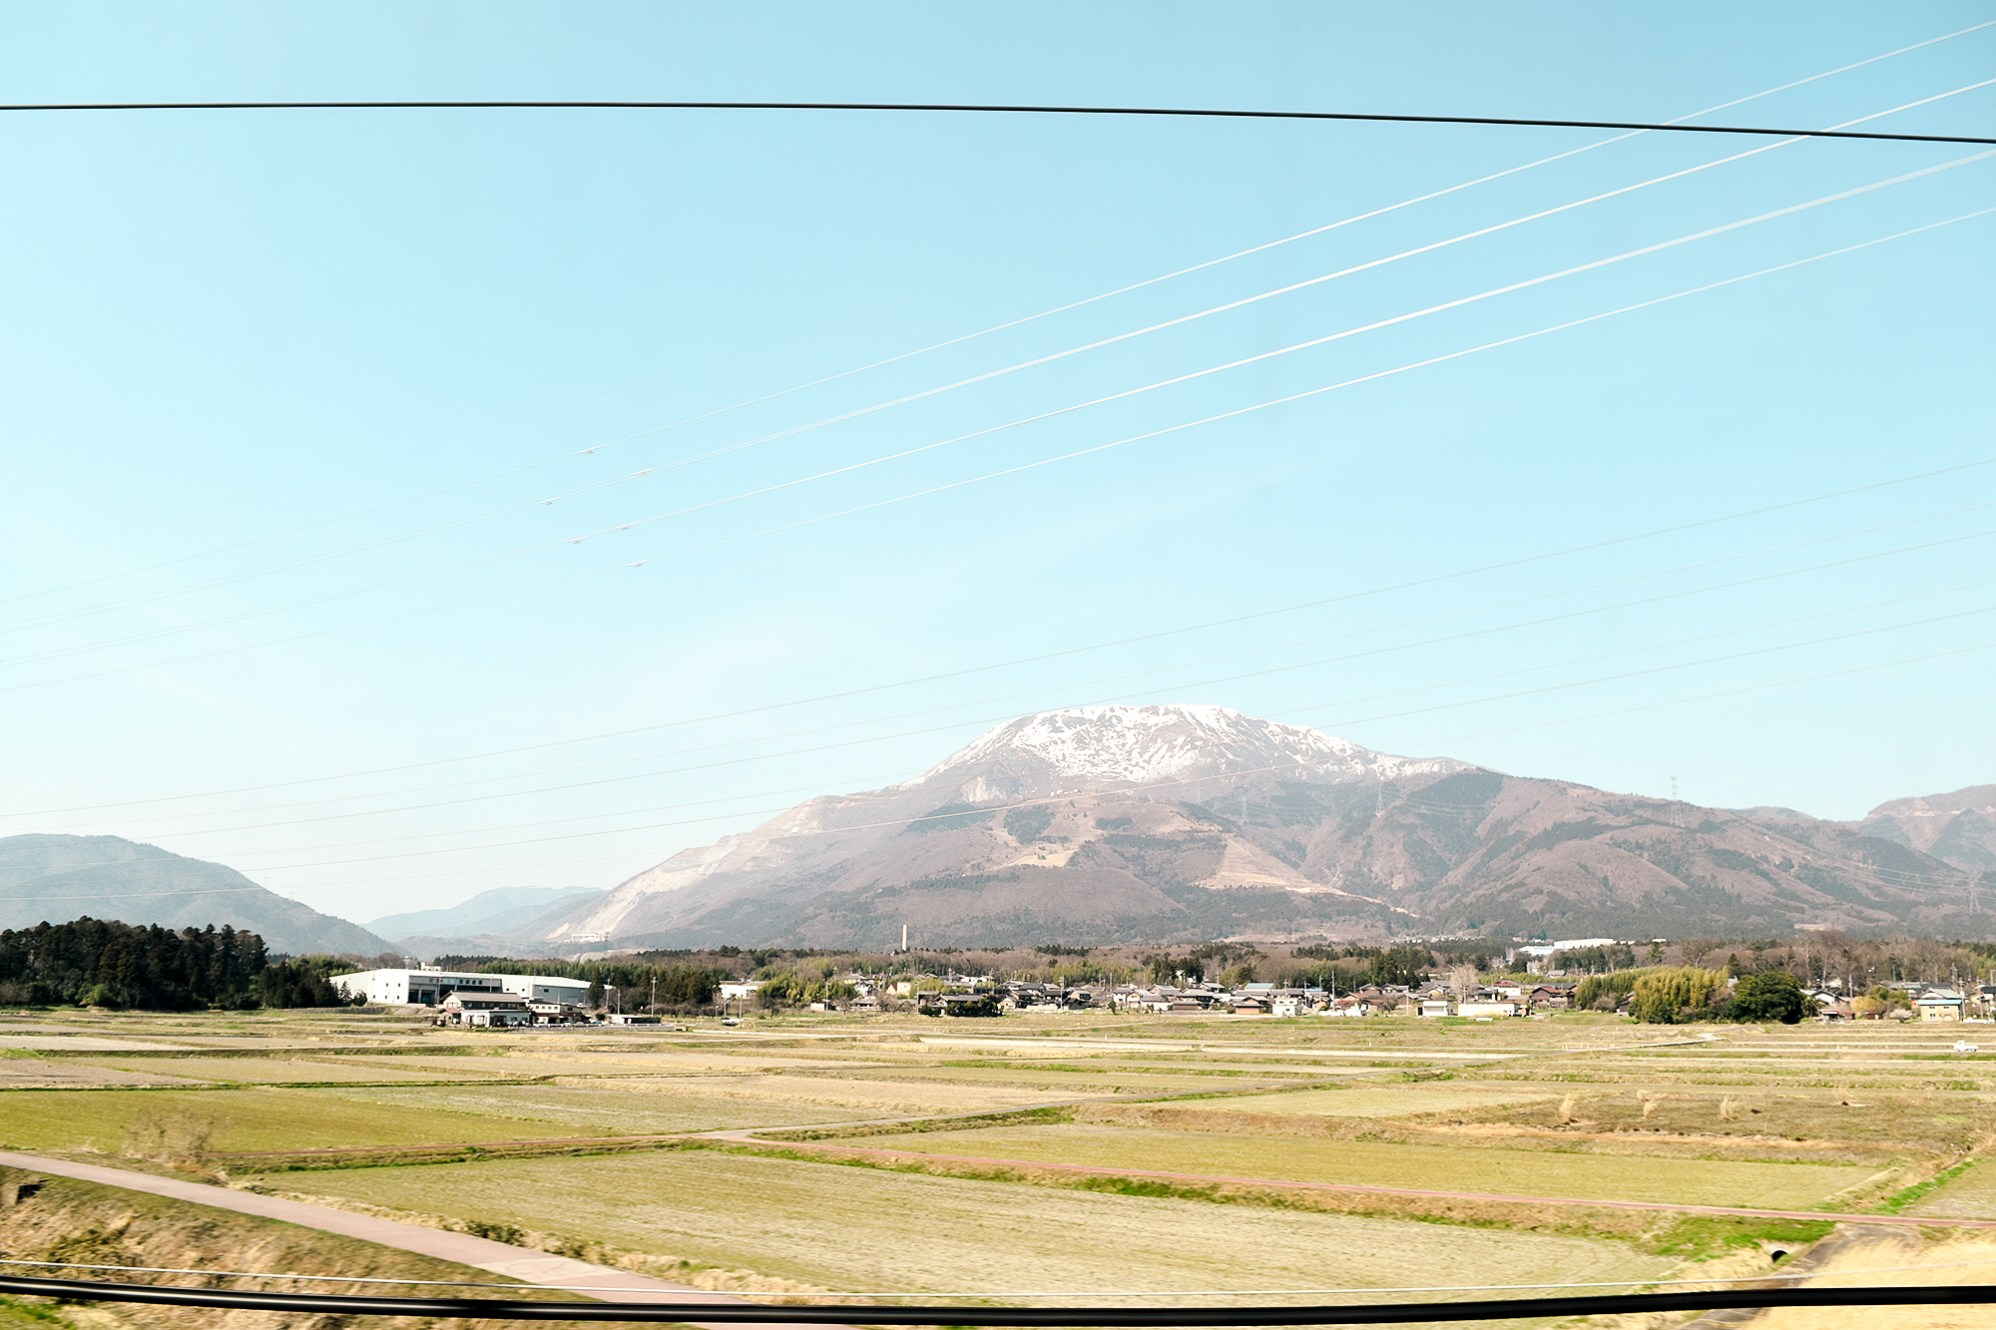 View from the bullet train ride. Actually saw Mt. Fuji really close too.